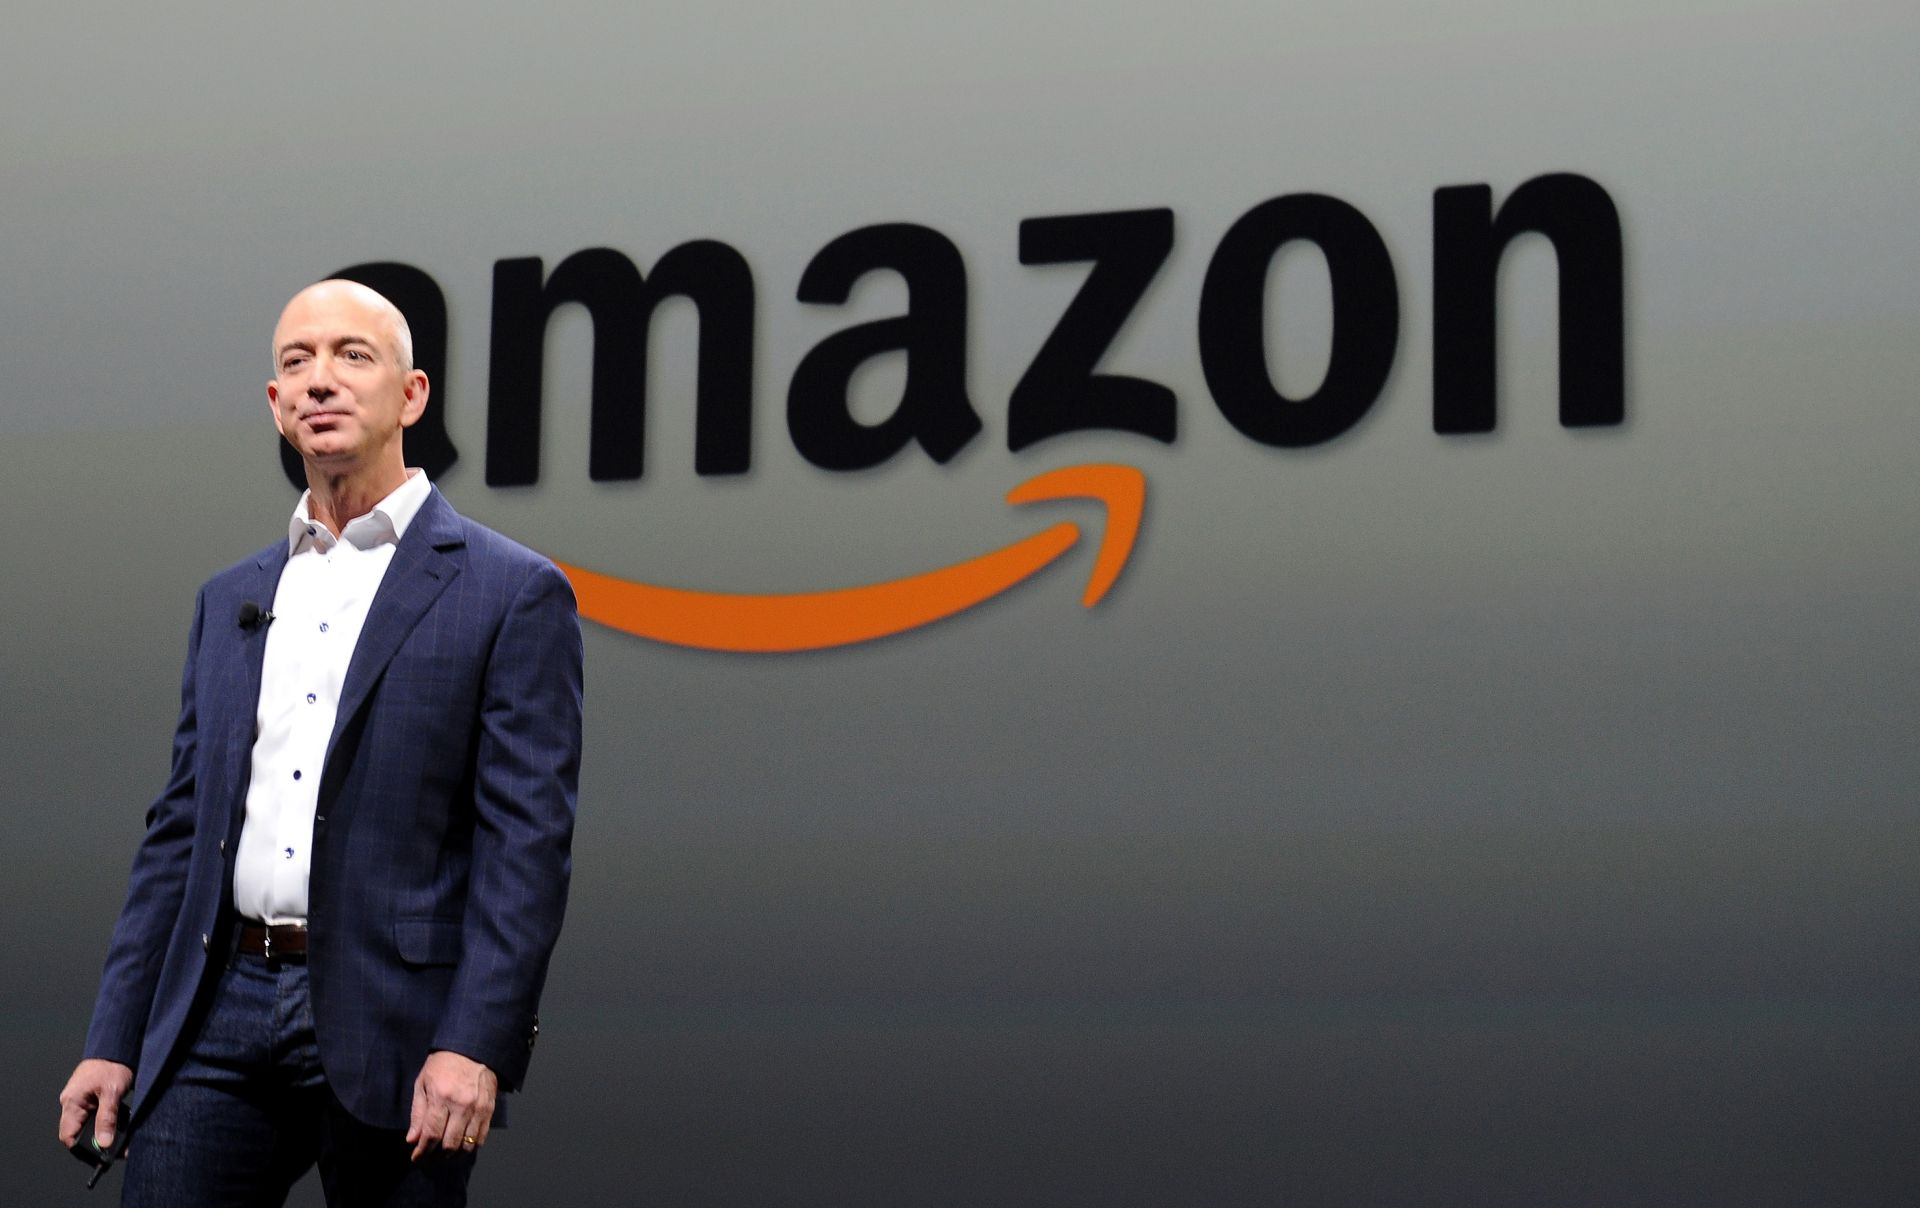 """(FILES) In this September 6, 2012 file photo, Jeff Bezos, CEO of Amazon, speaks during a press conference in Santa Monica, California.  Amazon founder Jeff Bezos acknowledged on December 2, 2014 missteps which have cost the tech giant billions, but said that is the price for taking """"bold bets."""" """"I've made billions of dollars of failures at Amazon.com,"""" Bezos told a New York conference sponsored by the news website Business Insider.  AFP PHOTO /JOE KLAMAR / FILES"""